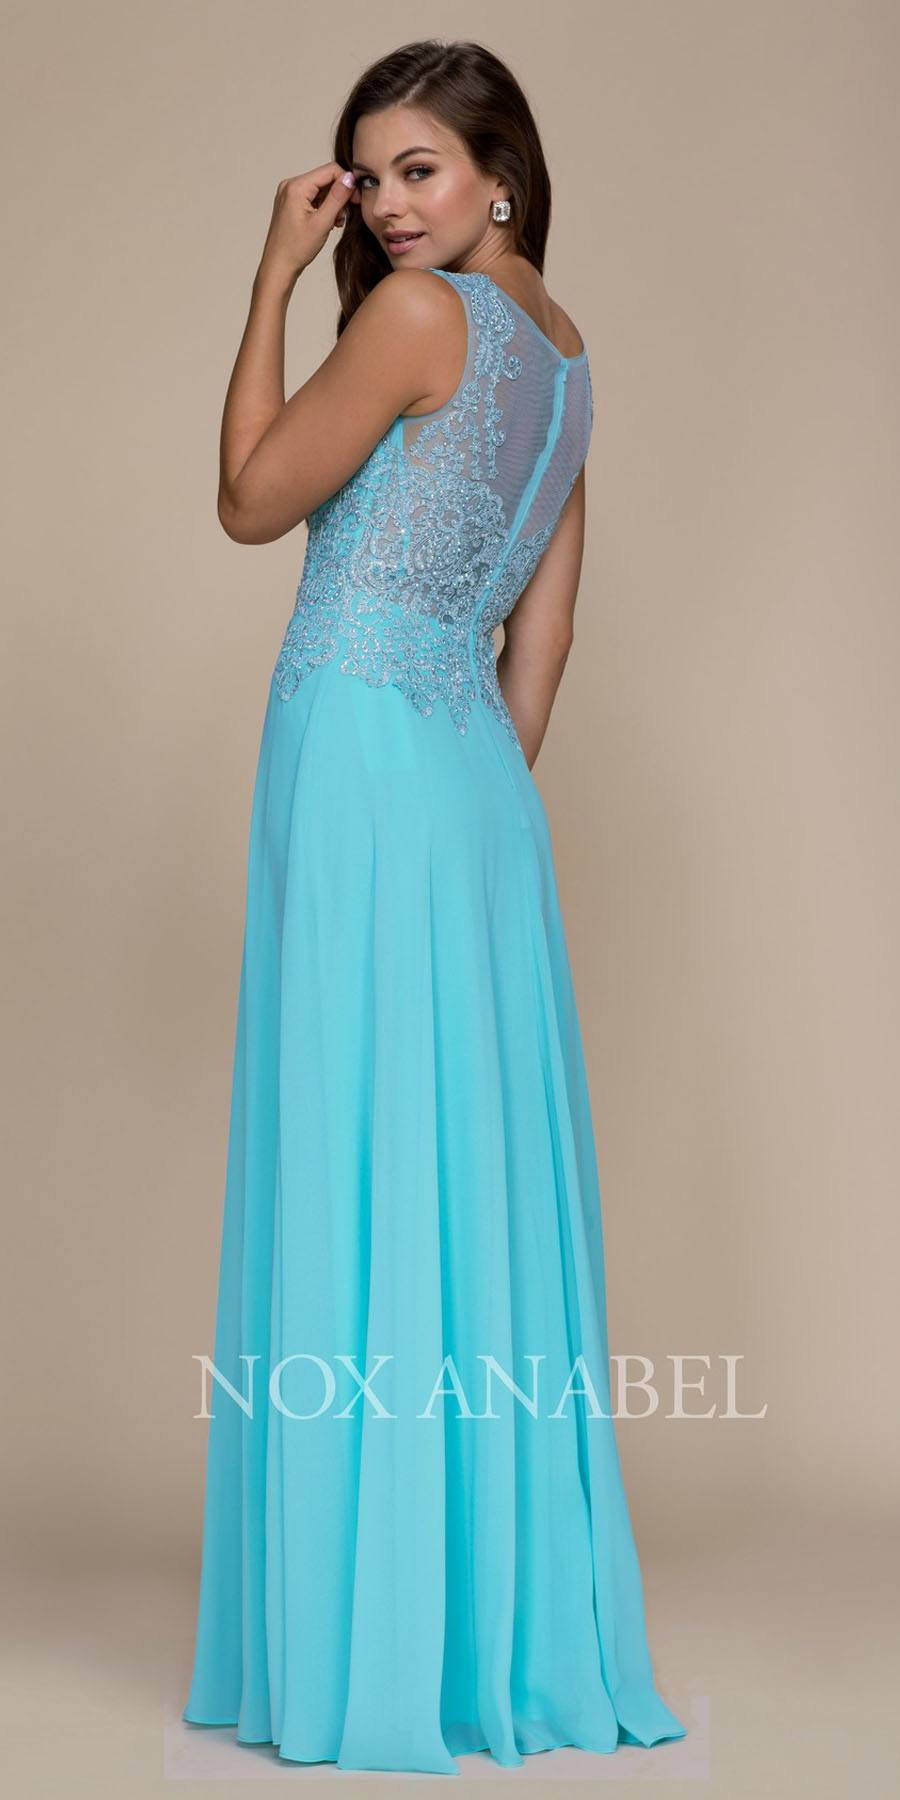 Nox Anabel Y100 Sleeveless Long Formal Dress Embroidered Bodice Navy ...